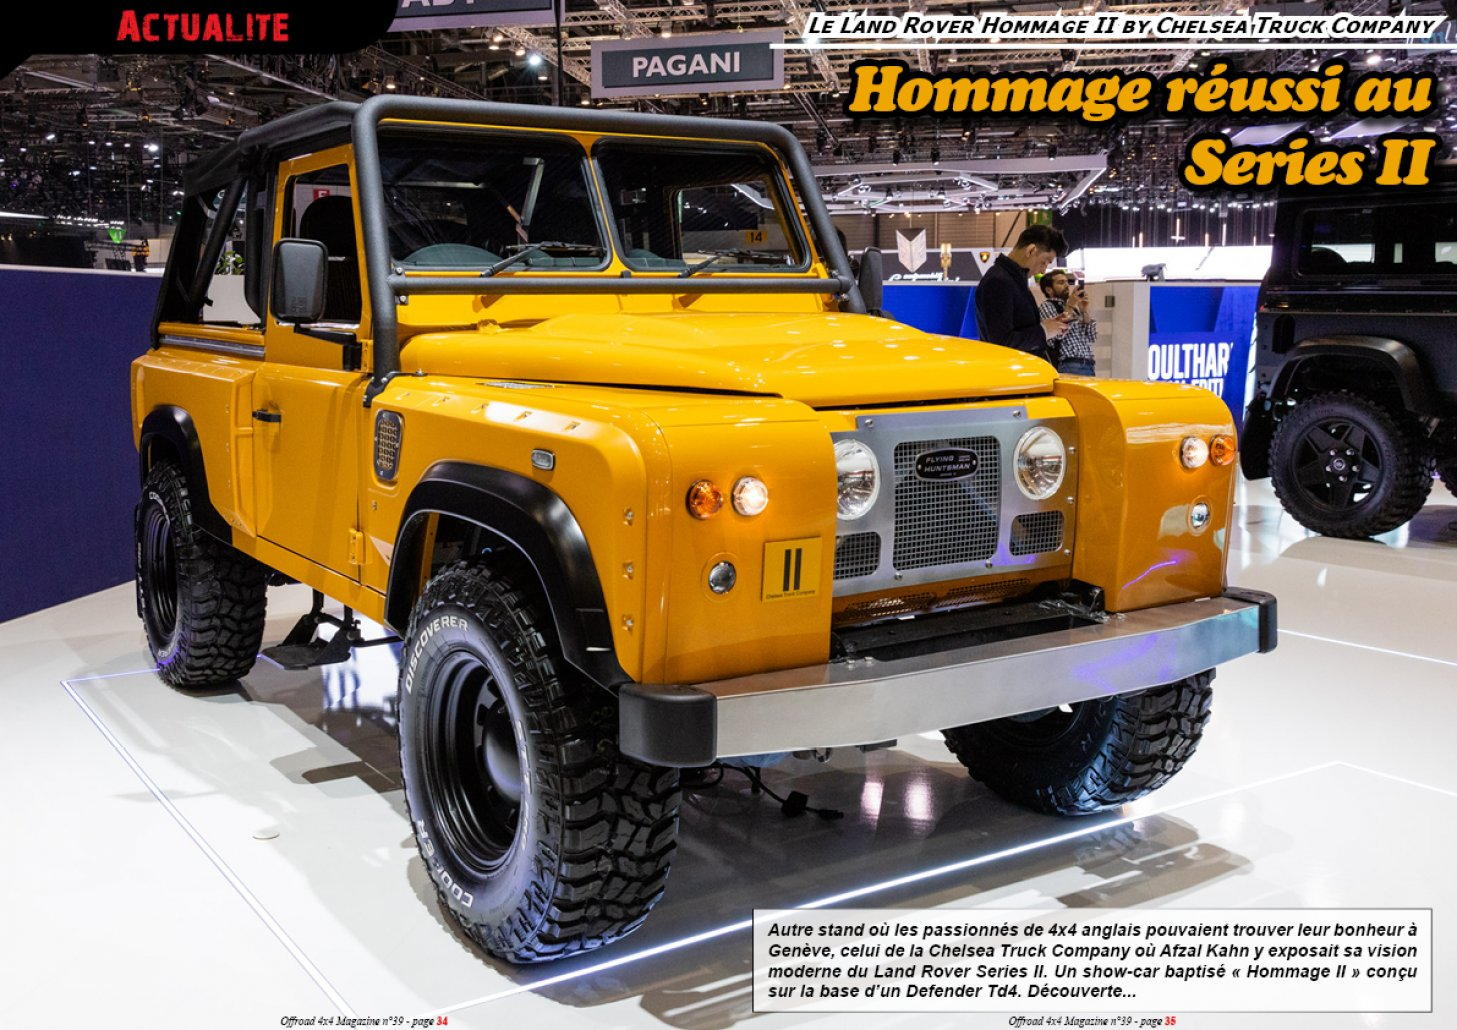 L'Hommage II by Chelsea Truck Company